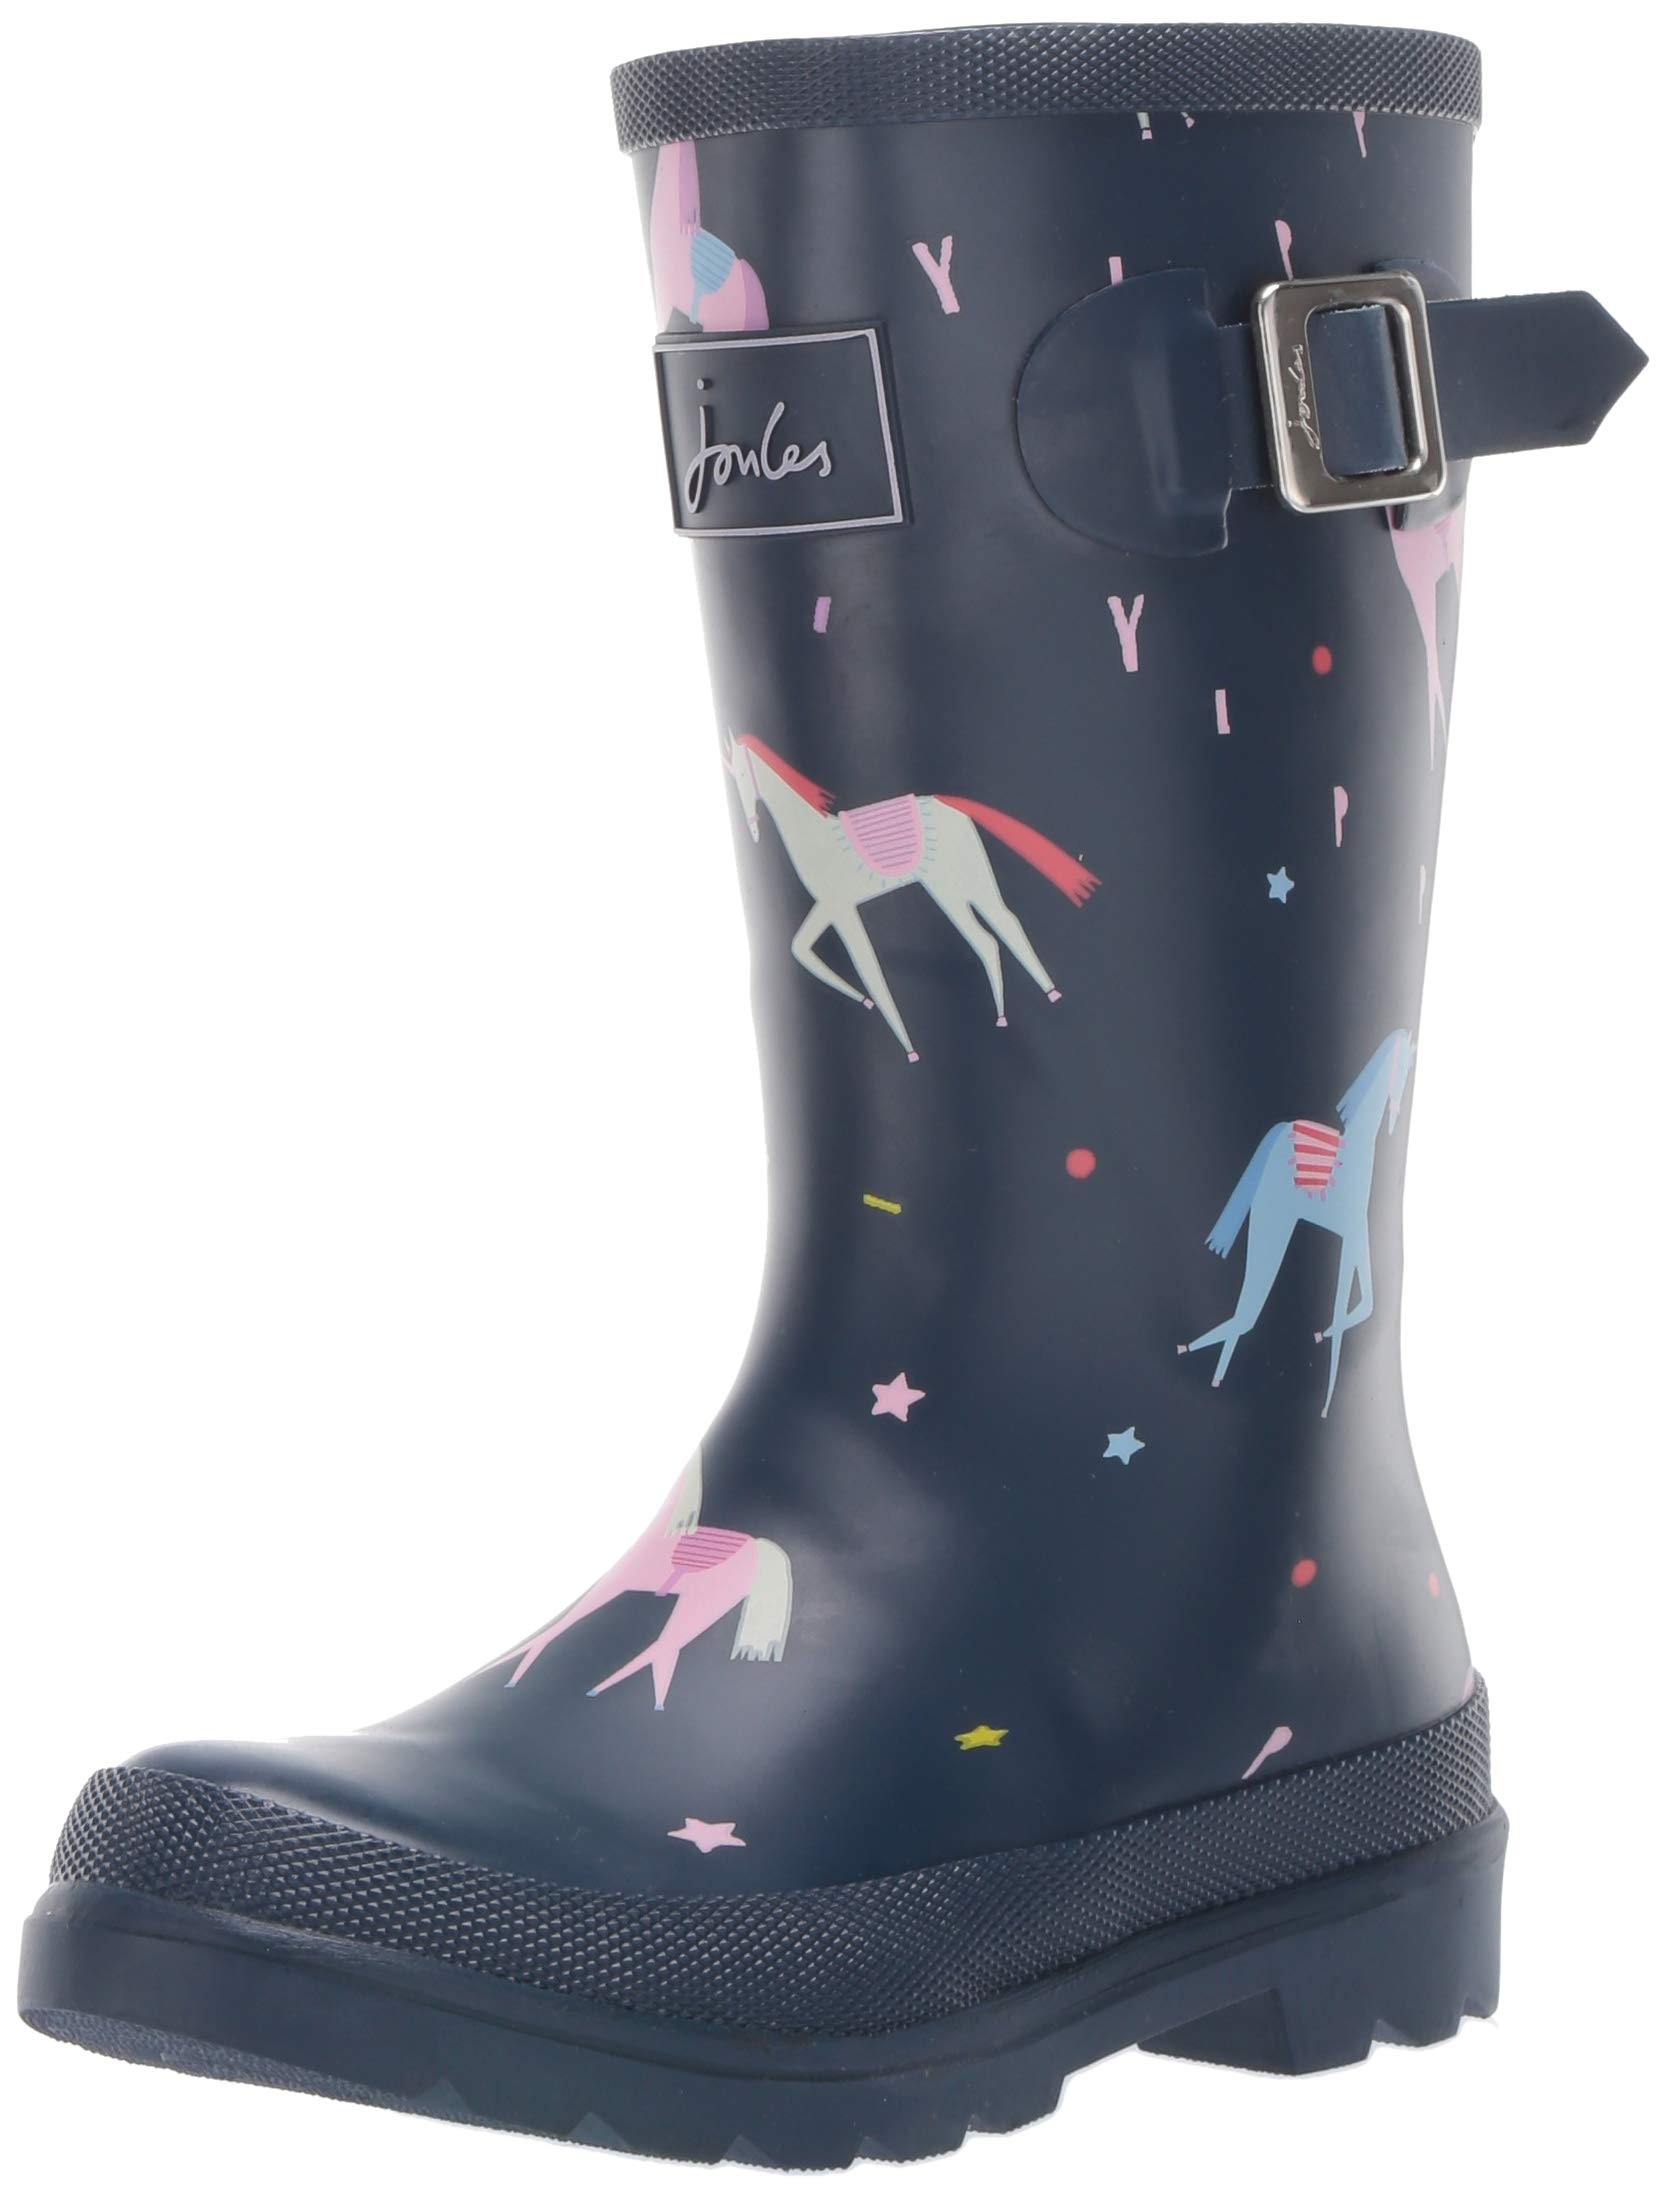 Joules Girls' JNR Welly Print Rain Boot, Blue Unicorn, 3 M US Little Kid by Joules (Image #1)